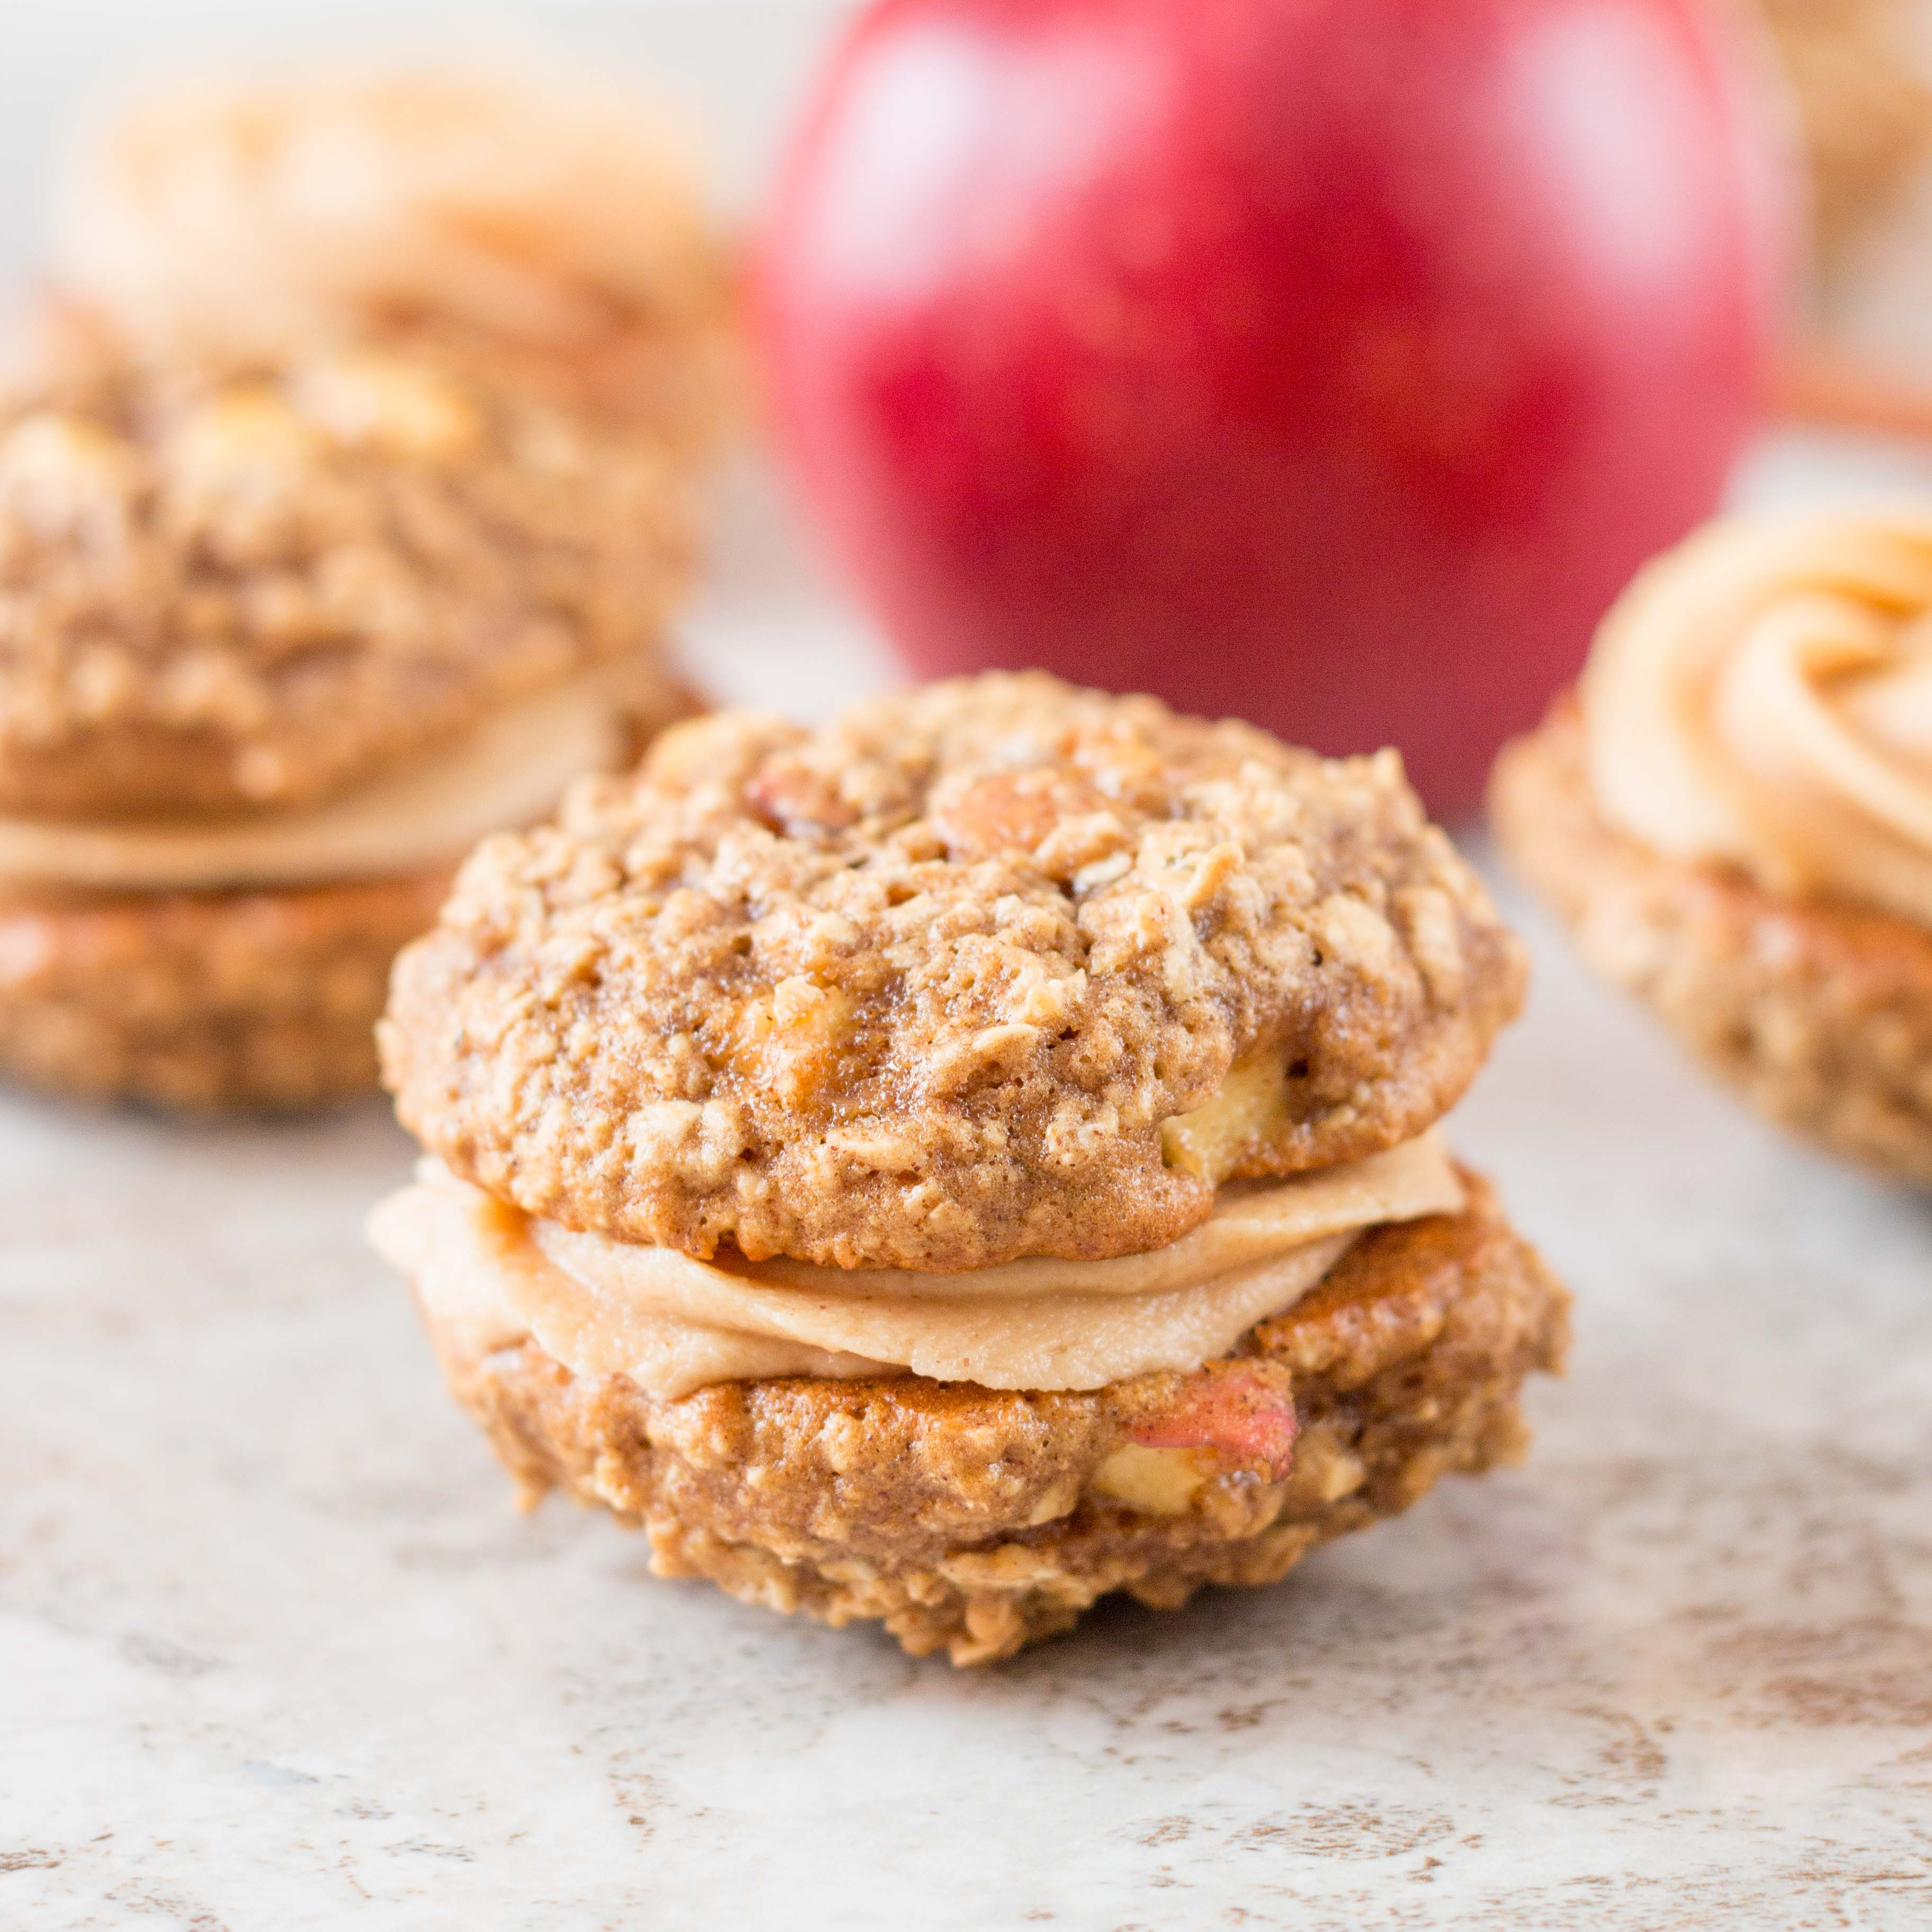 Apple Oatmeal Whoopie Pies with Peanut Butter Frosting